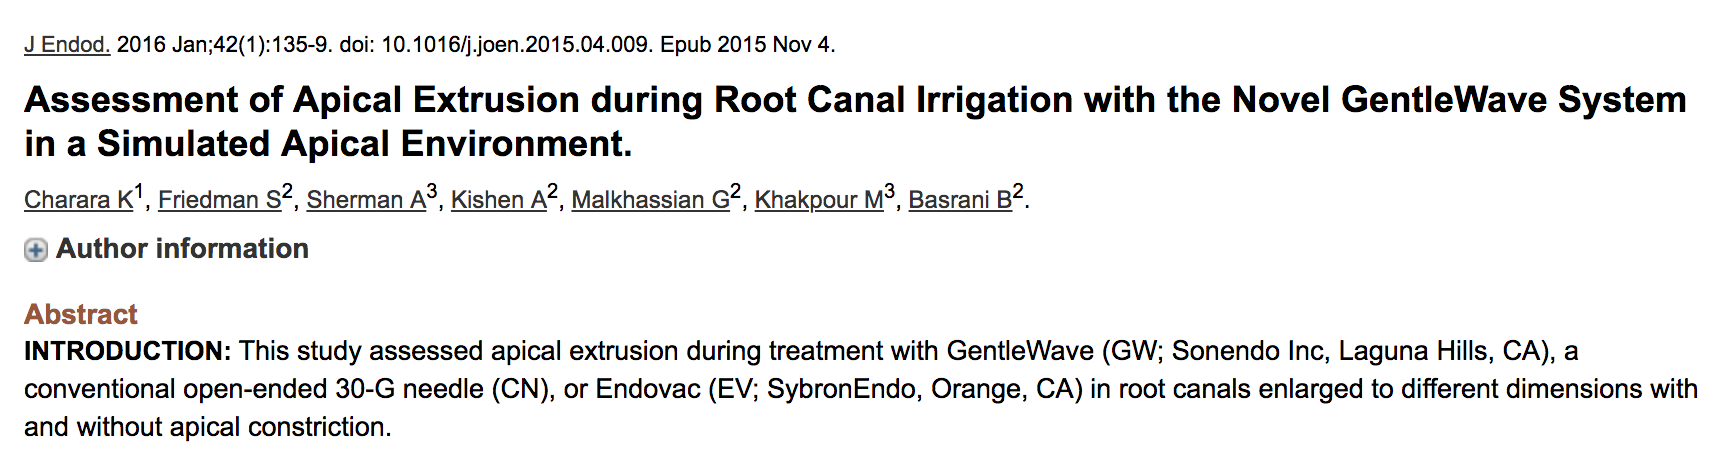 Dr. Gevik Malkhassian - Assessment of apical extrusion during root canal irrigation